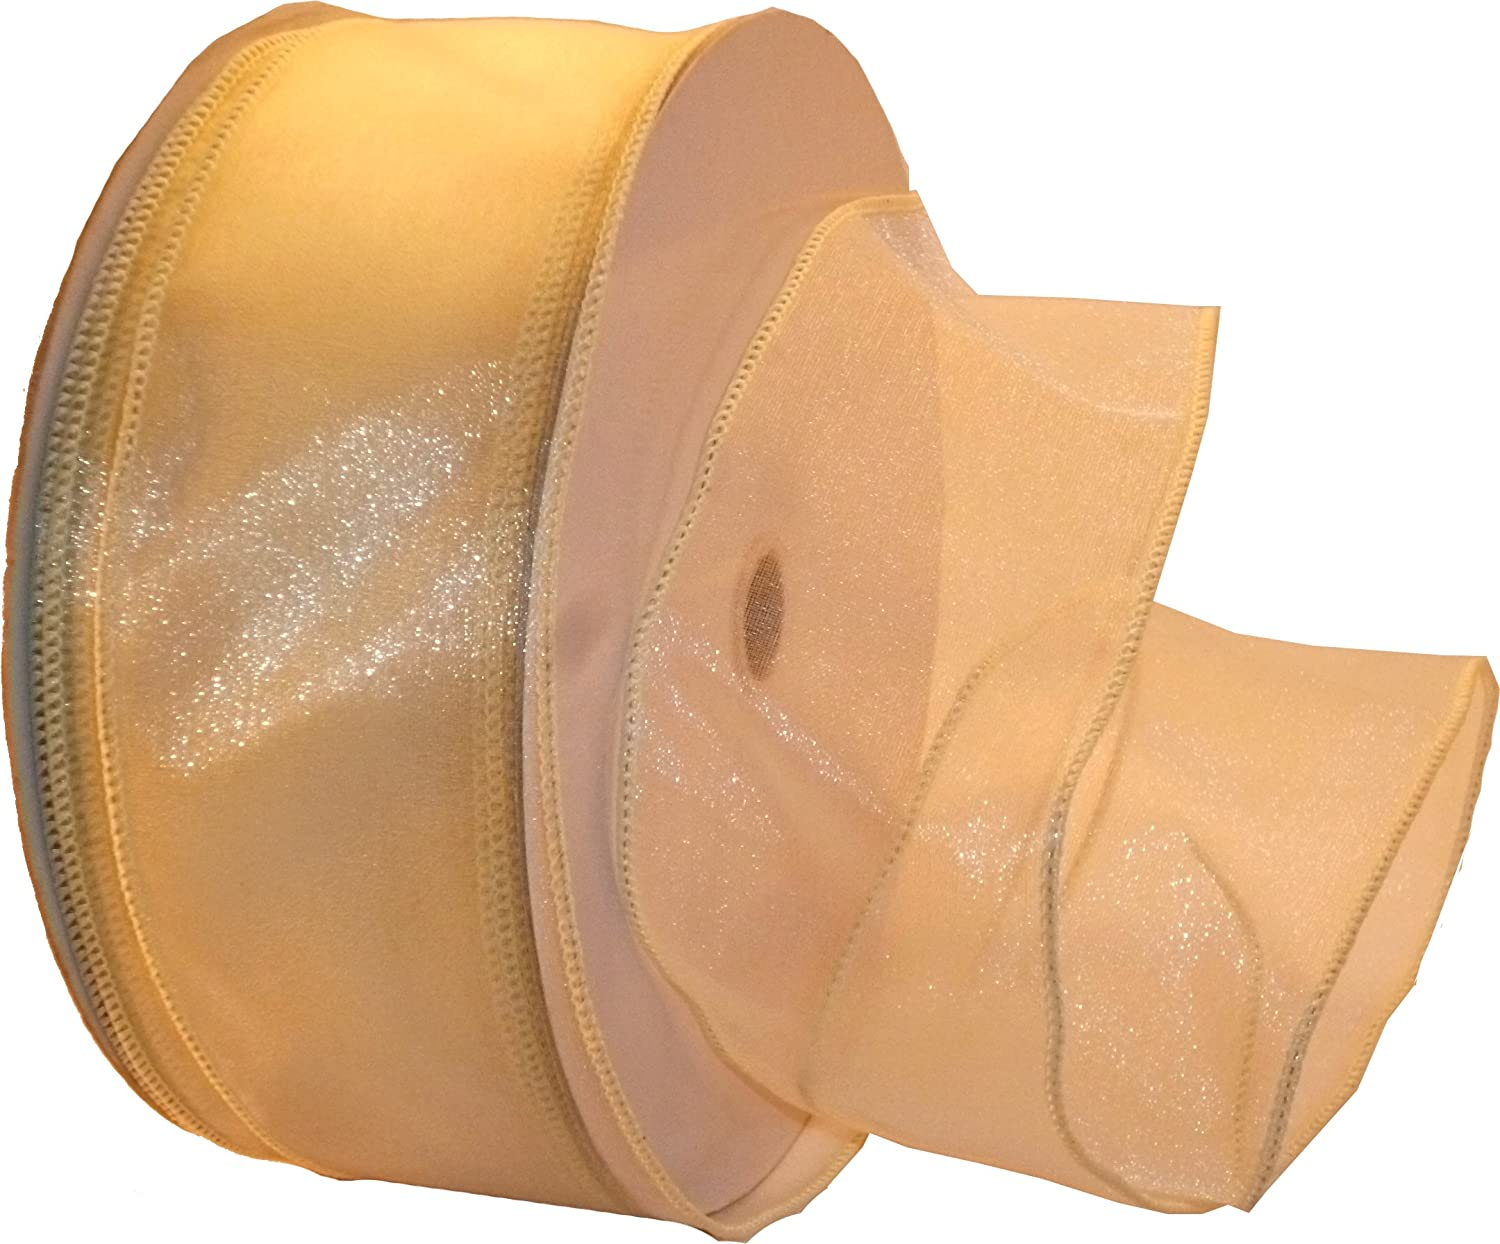 Reliant Ribbon 99908W-810-09K Sheer Lovely Value Wired Edge Ribbon 1-1//2 Inch X 50 Yards Ivory